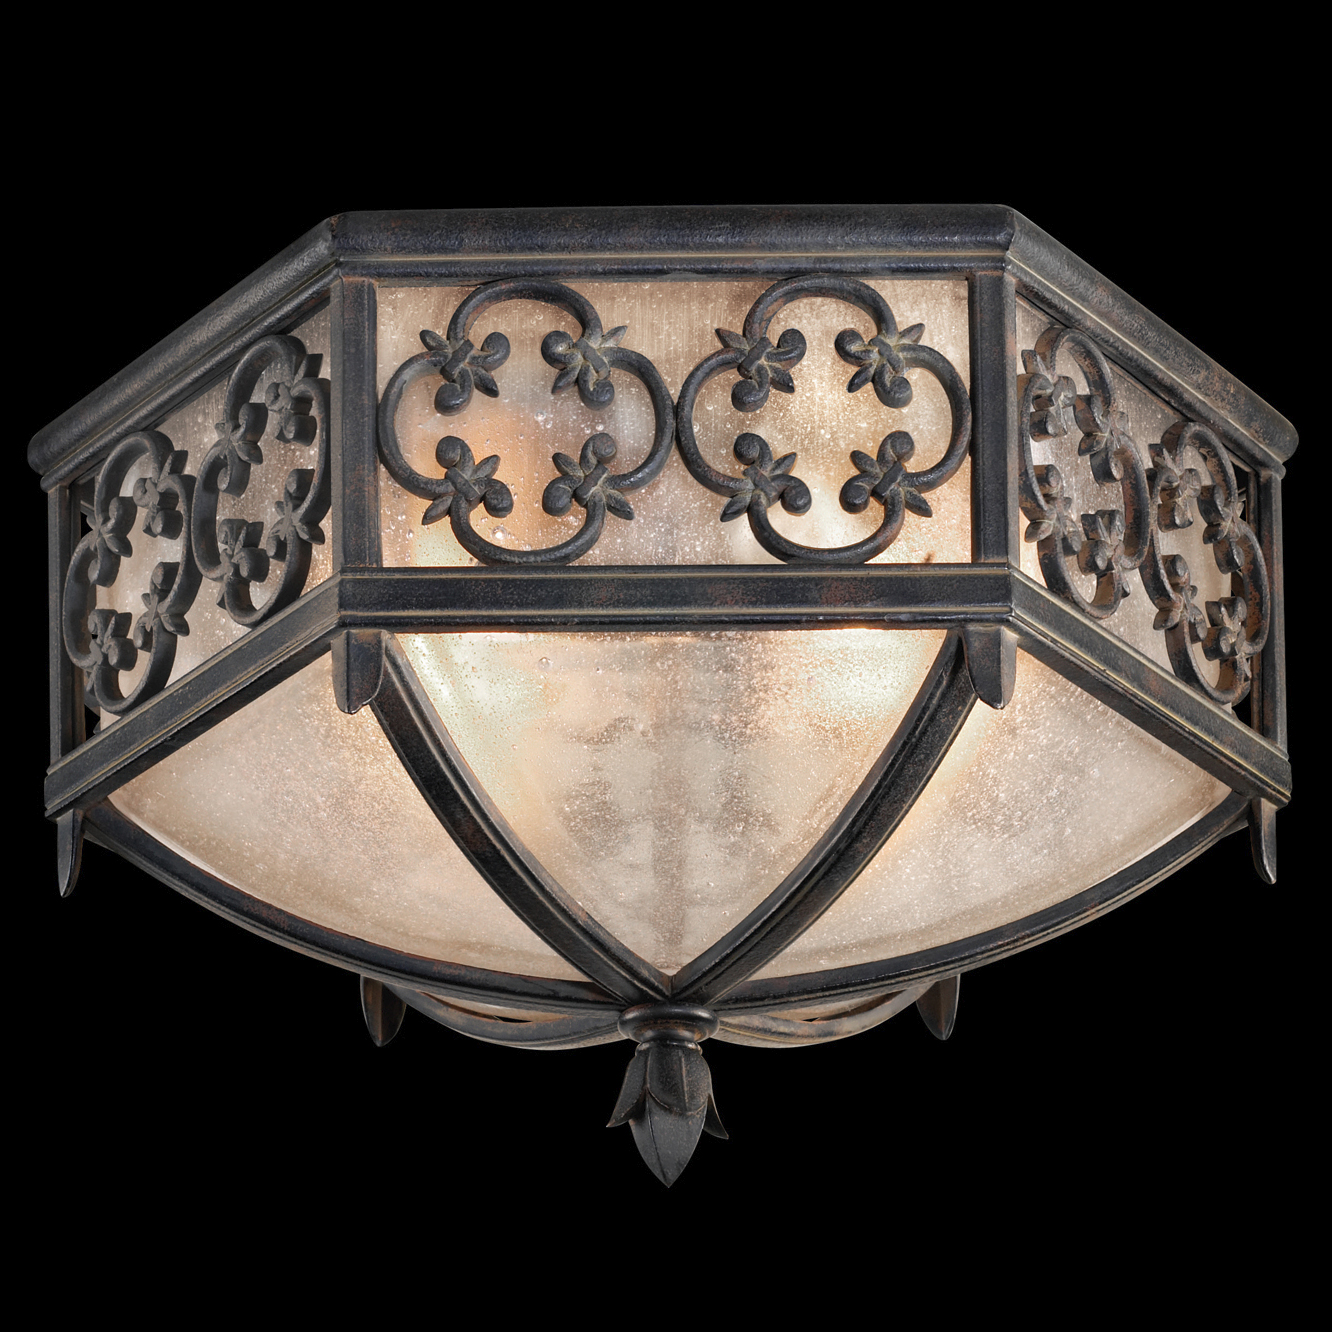 costa del sol outdoor ceiling light fixture by fine art lamps 324882